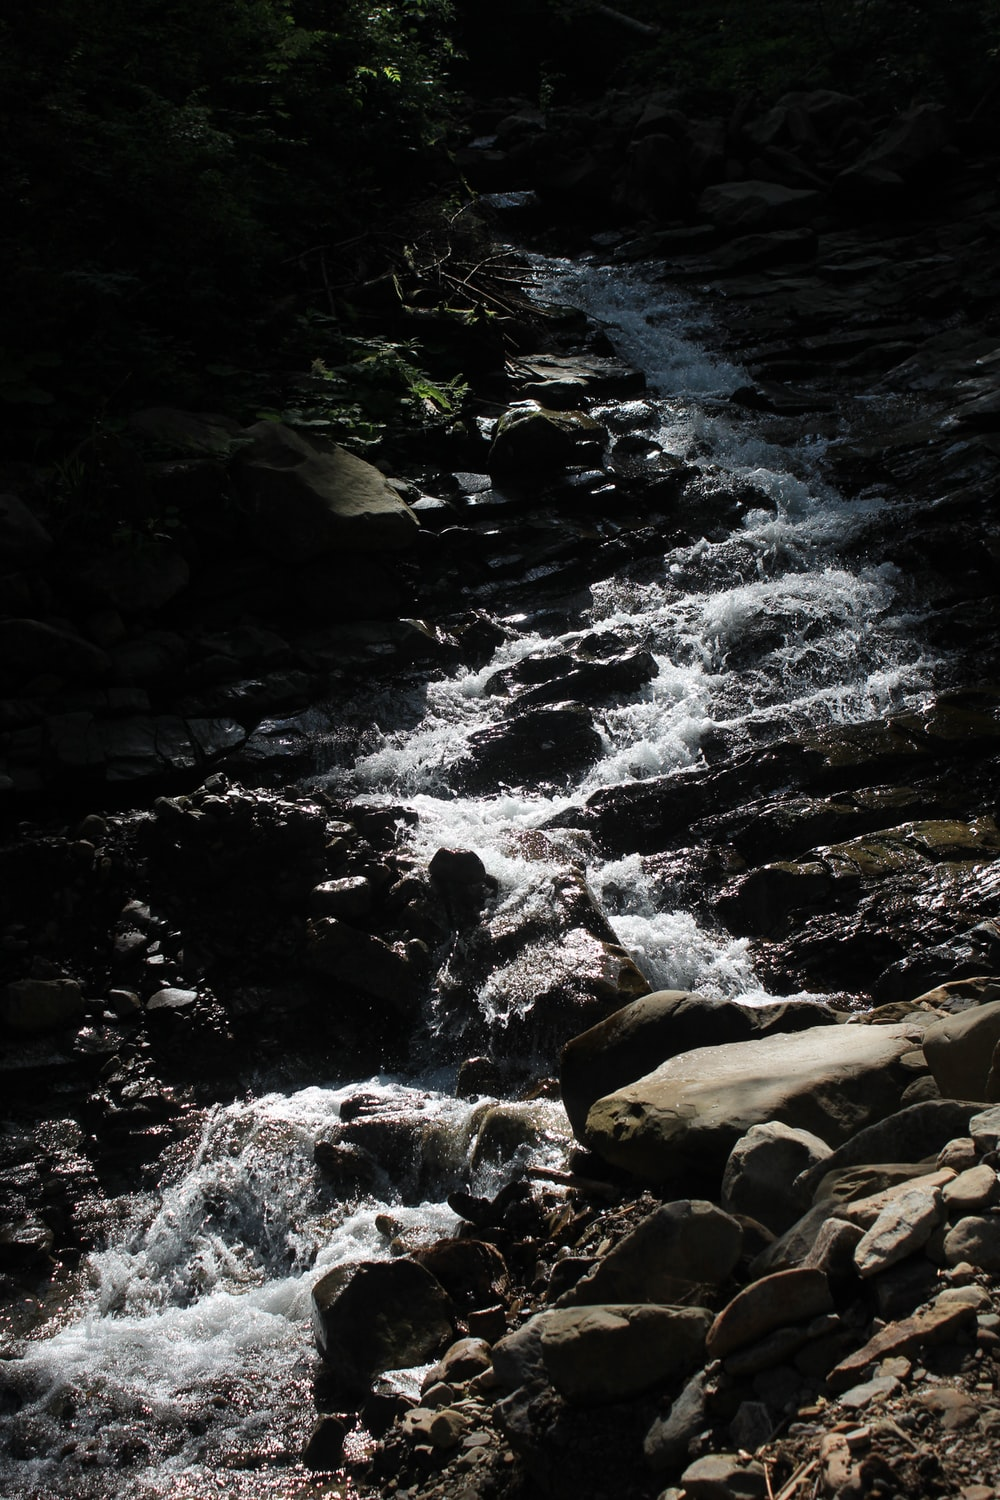 water flowing on rocky river